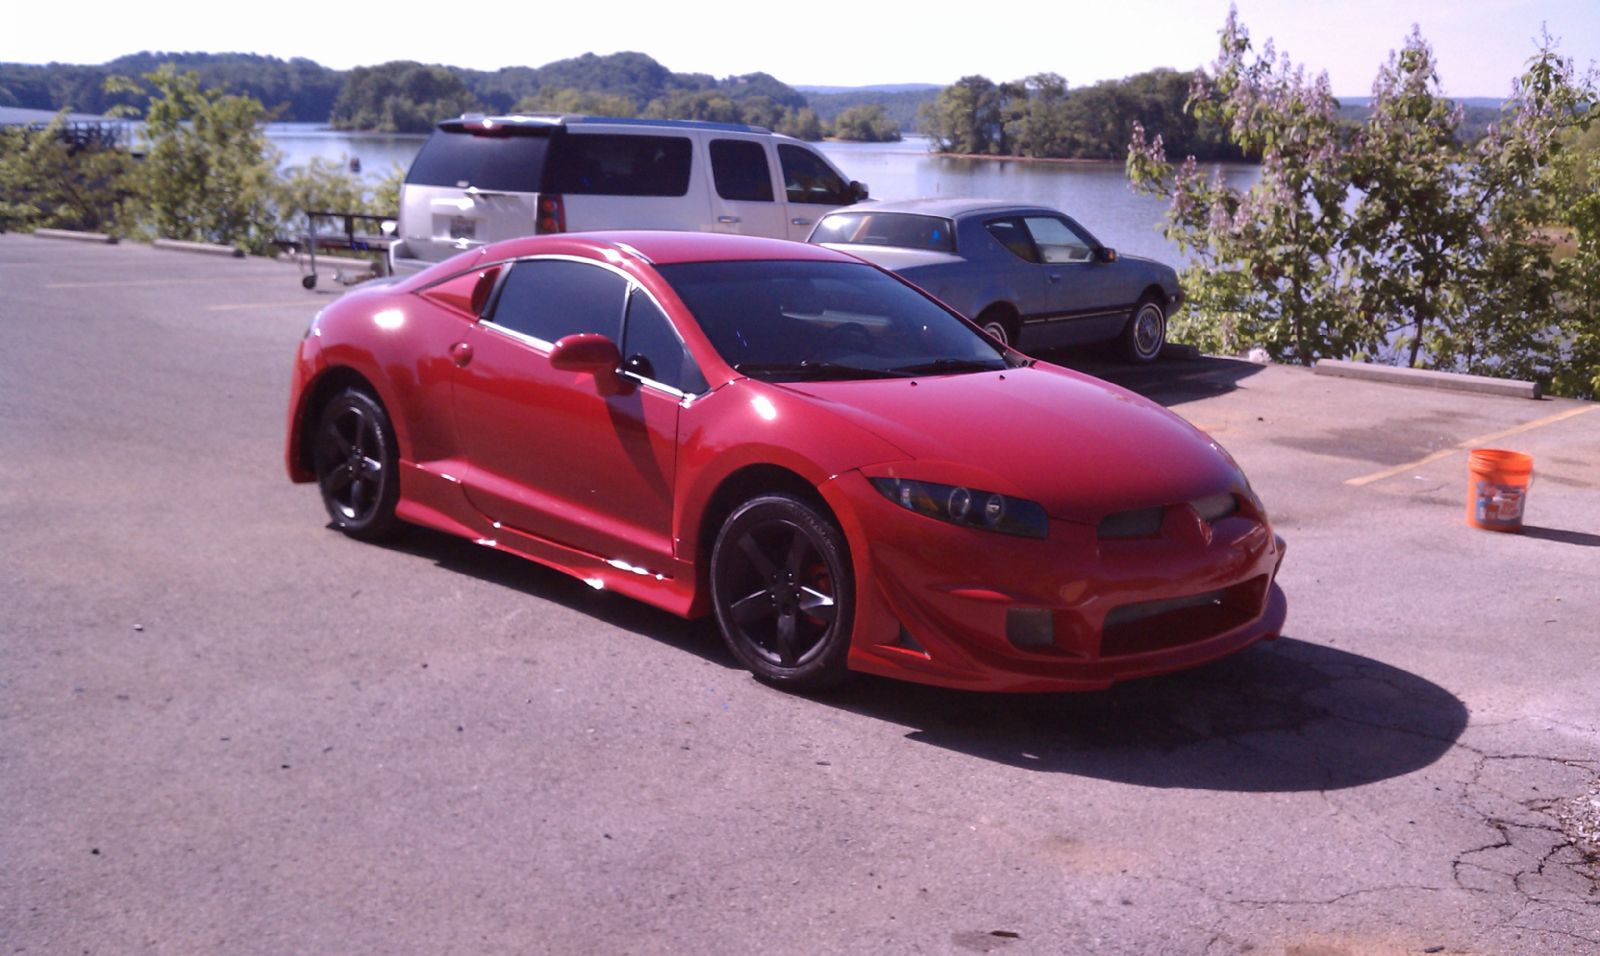 2006 mitsubishi eclipse for sale harrison township new jersey. Black Bedroom Furniture Sets. Home Design Ideas